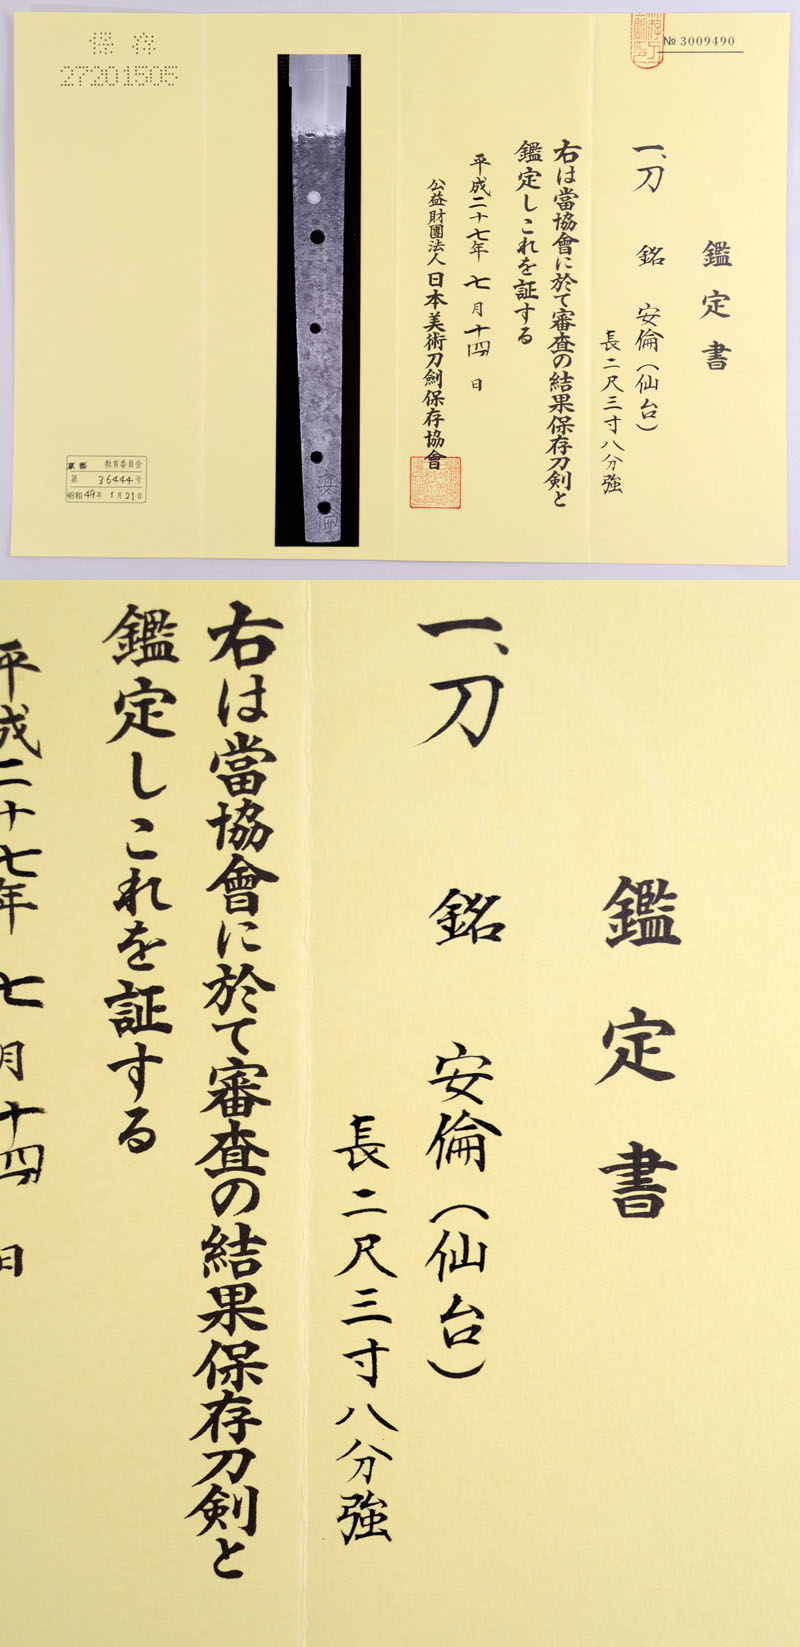 安倫(仙台) Picture of Certificate